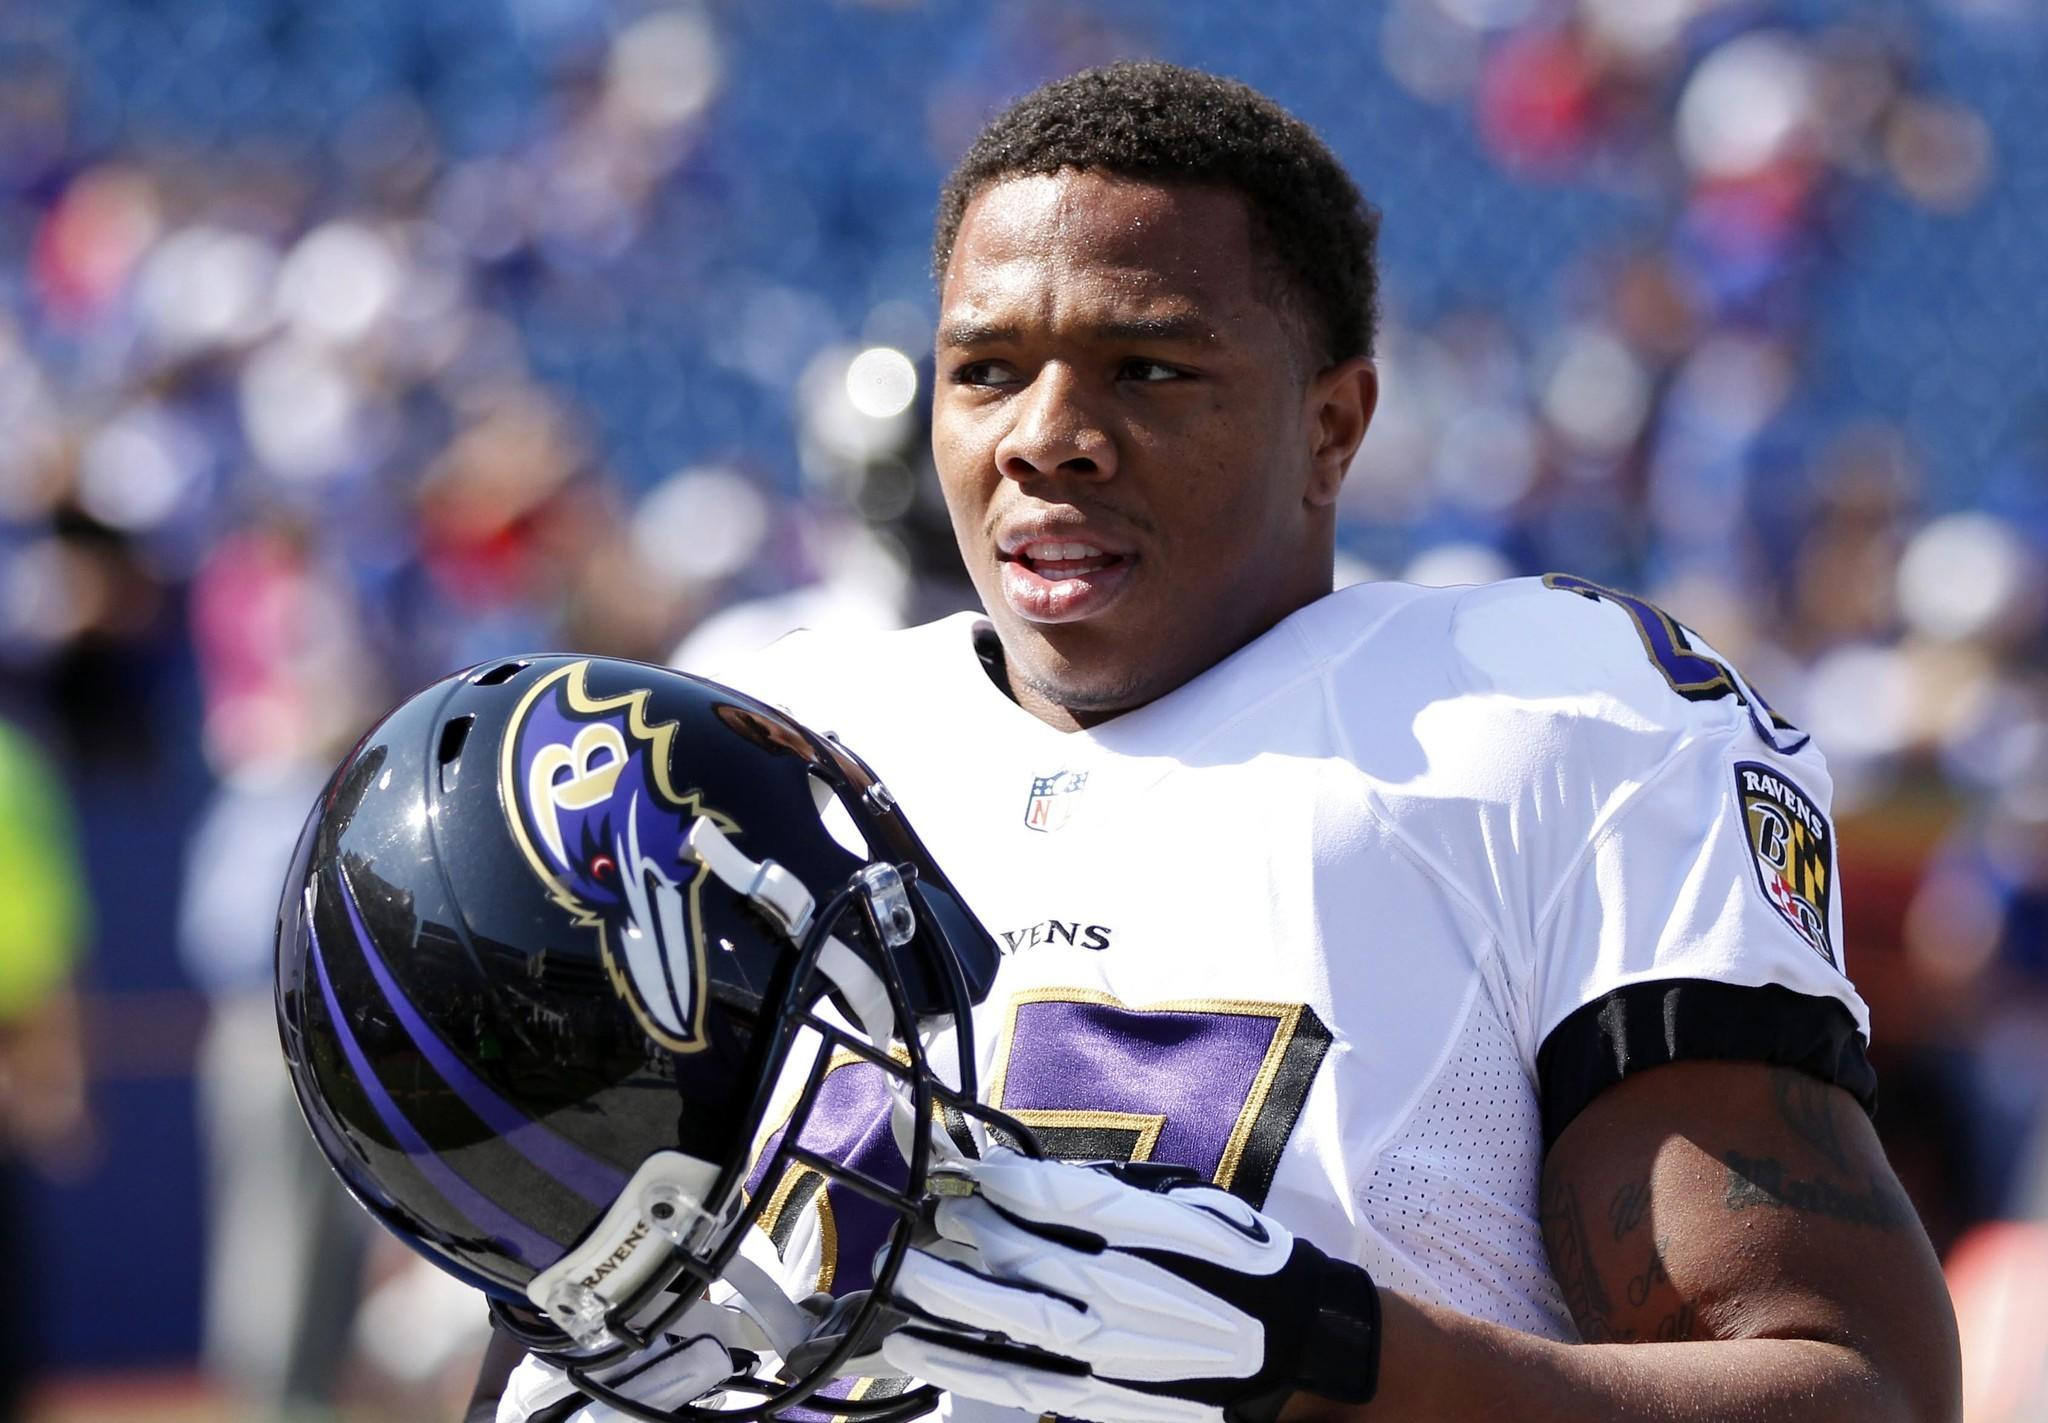 Ravens running back Ray Rice, shown before the team's game against the Buffalo Bills in late September, knows the wear and tear those at his position endure throughout a lengthy career.